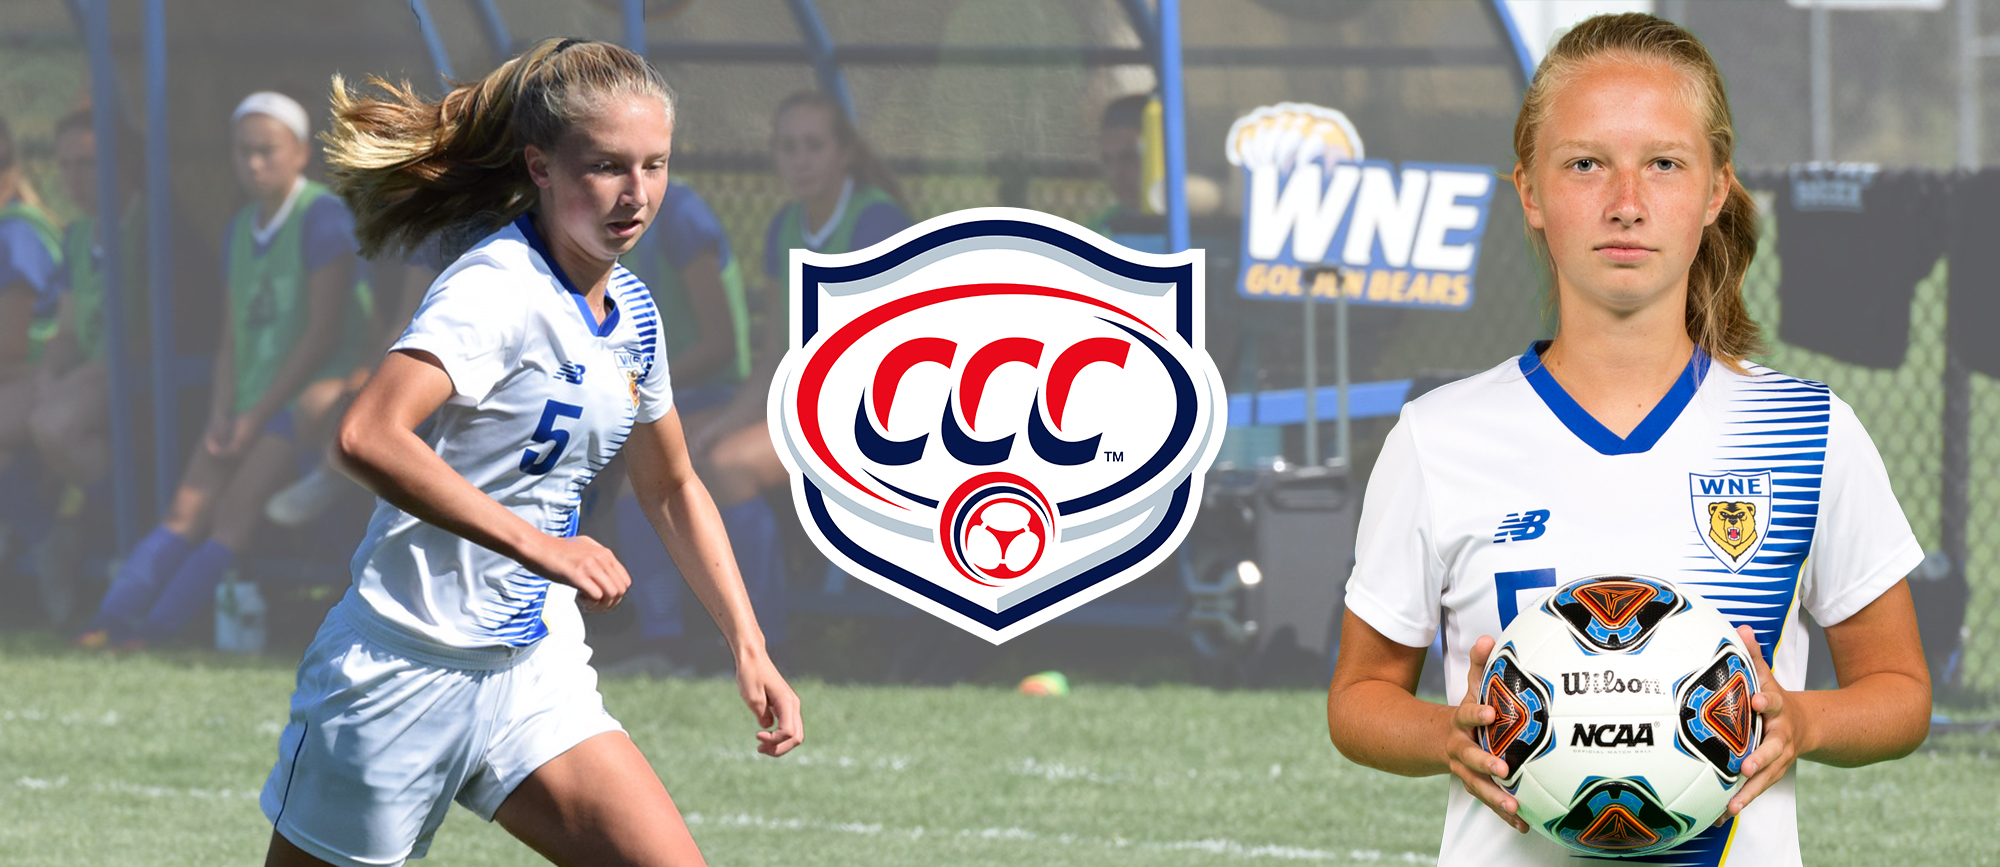 Allison Bruehwiler Earns First Career CCC Offensive Player of the Week Award